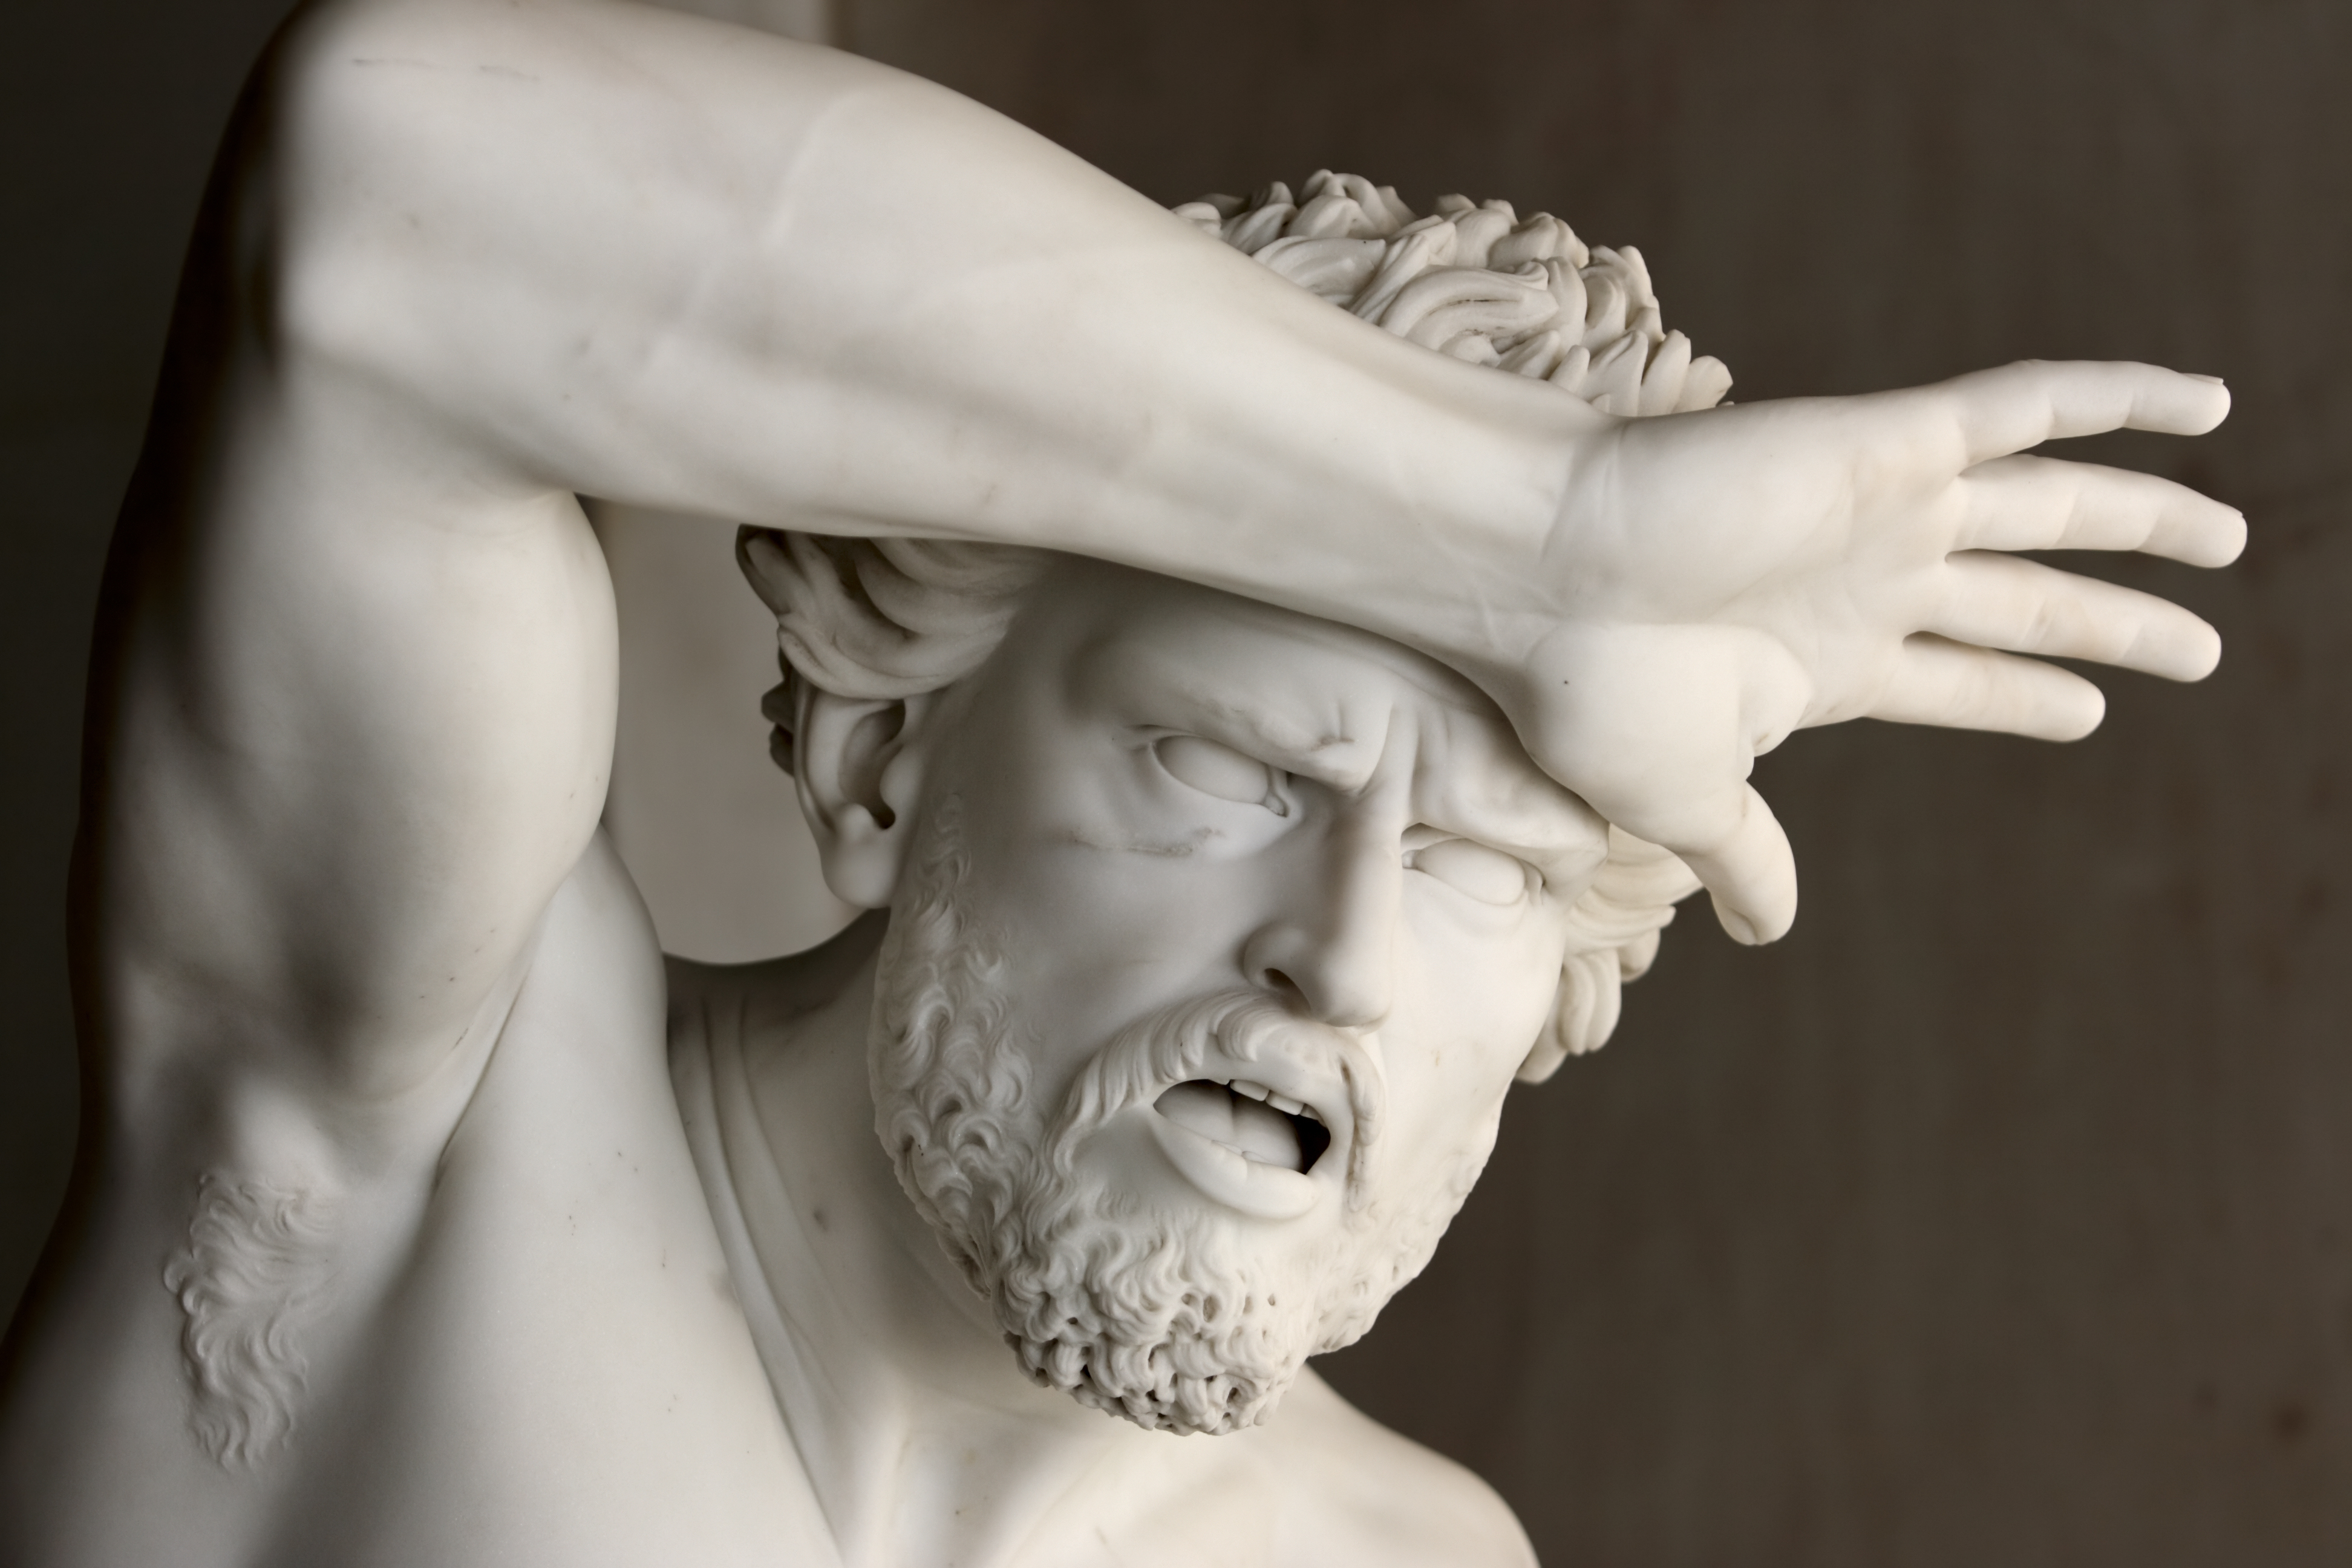 Fear (statue of shocked man protecting his head with hand)